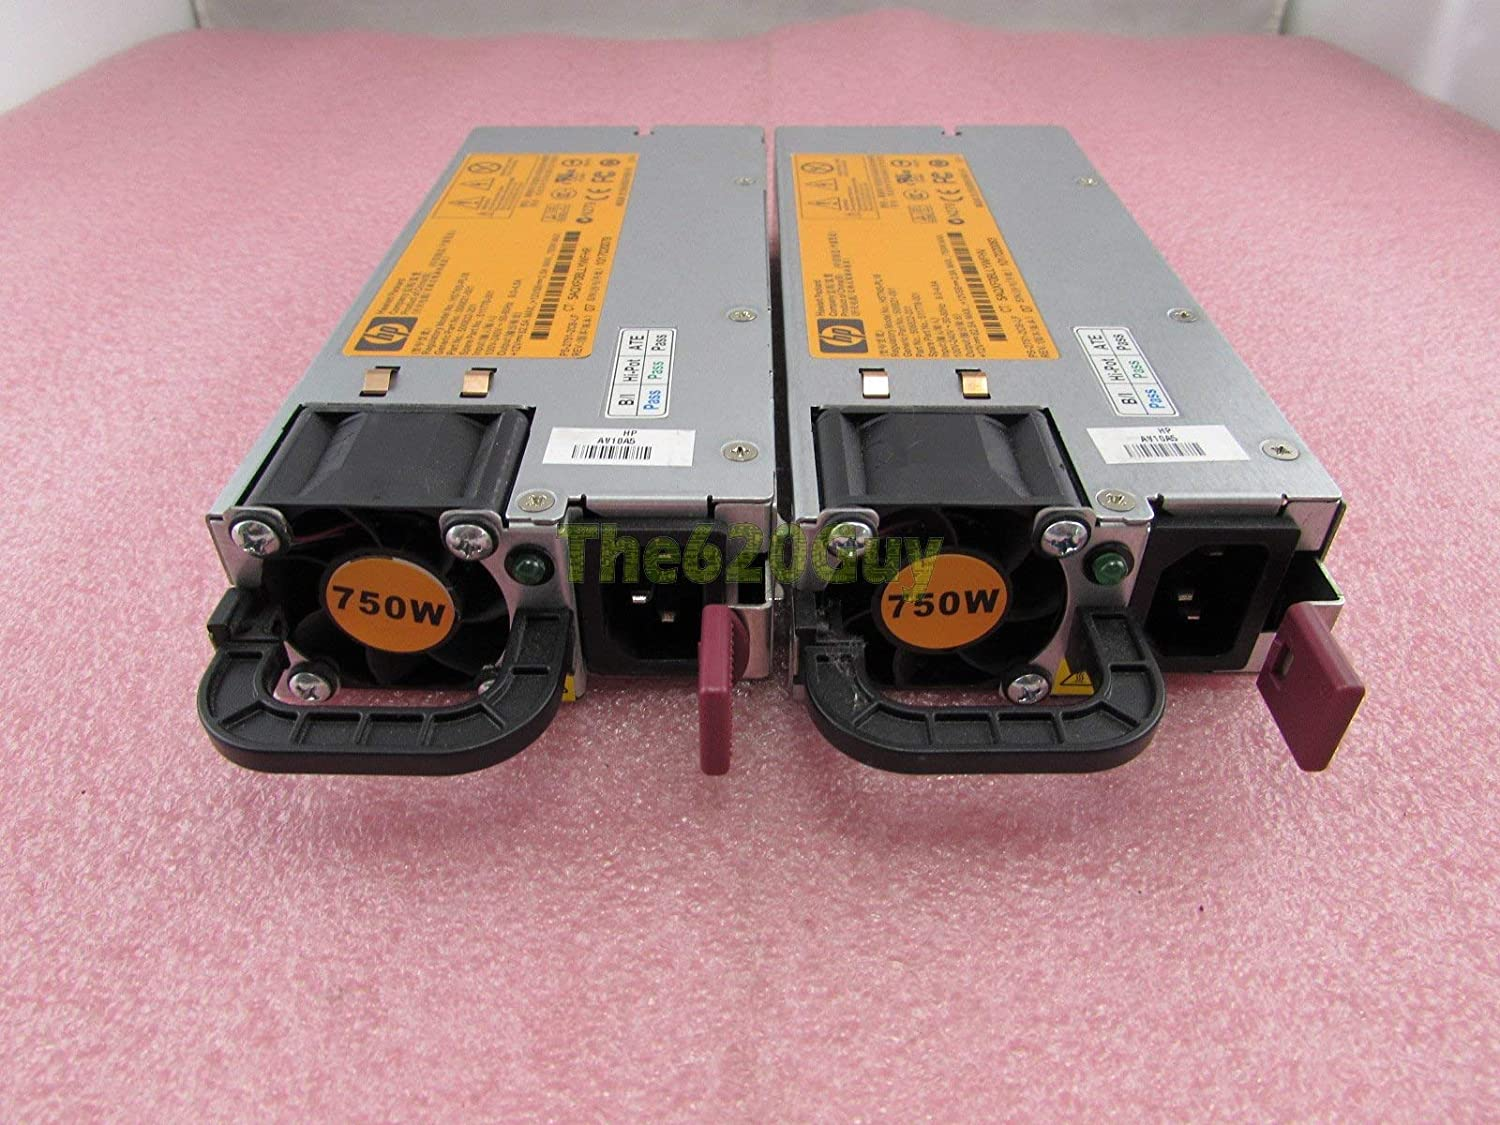 Lot of 2 HP 750W Power Supply PSU 511778-001 506822-201 506821-001 HTSNS-PL18 (Certified Refurbished)